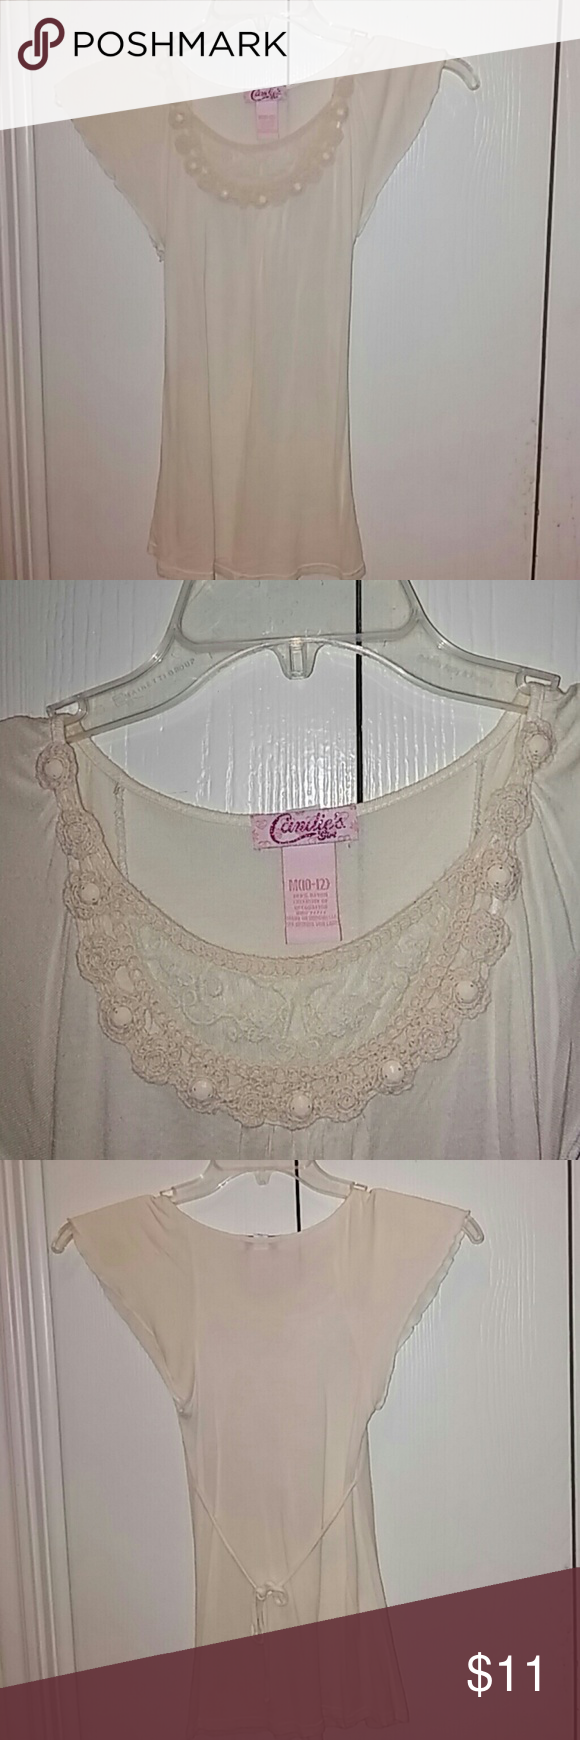 Candie's Girl blouse Cream colored blouse used 2 times. Candie's Tops Blouses